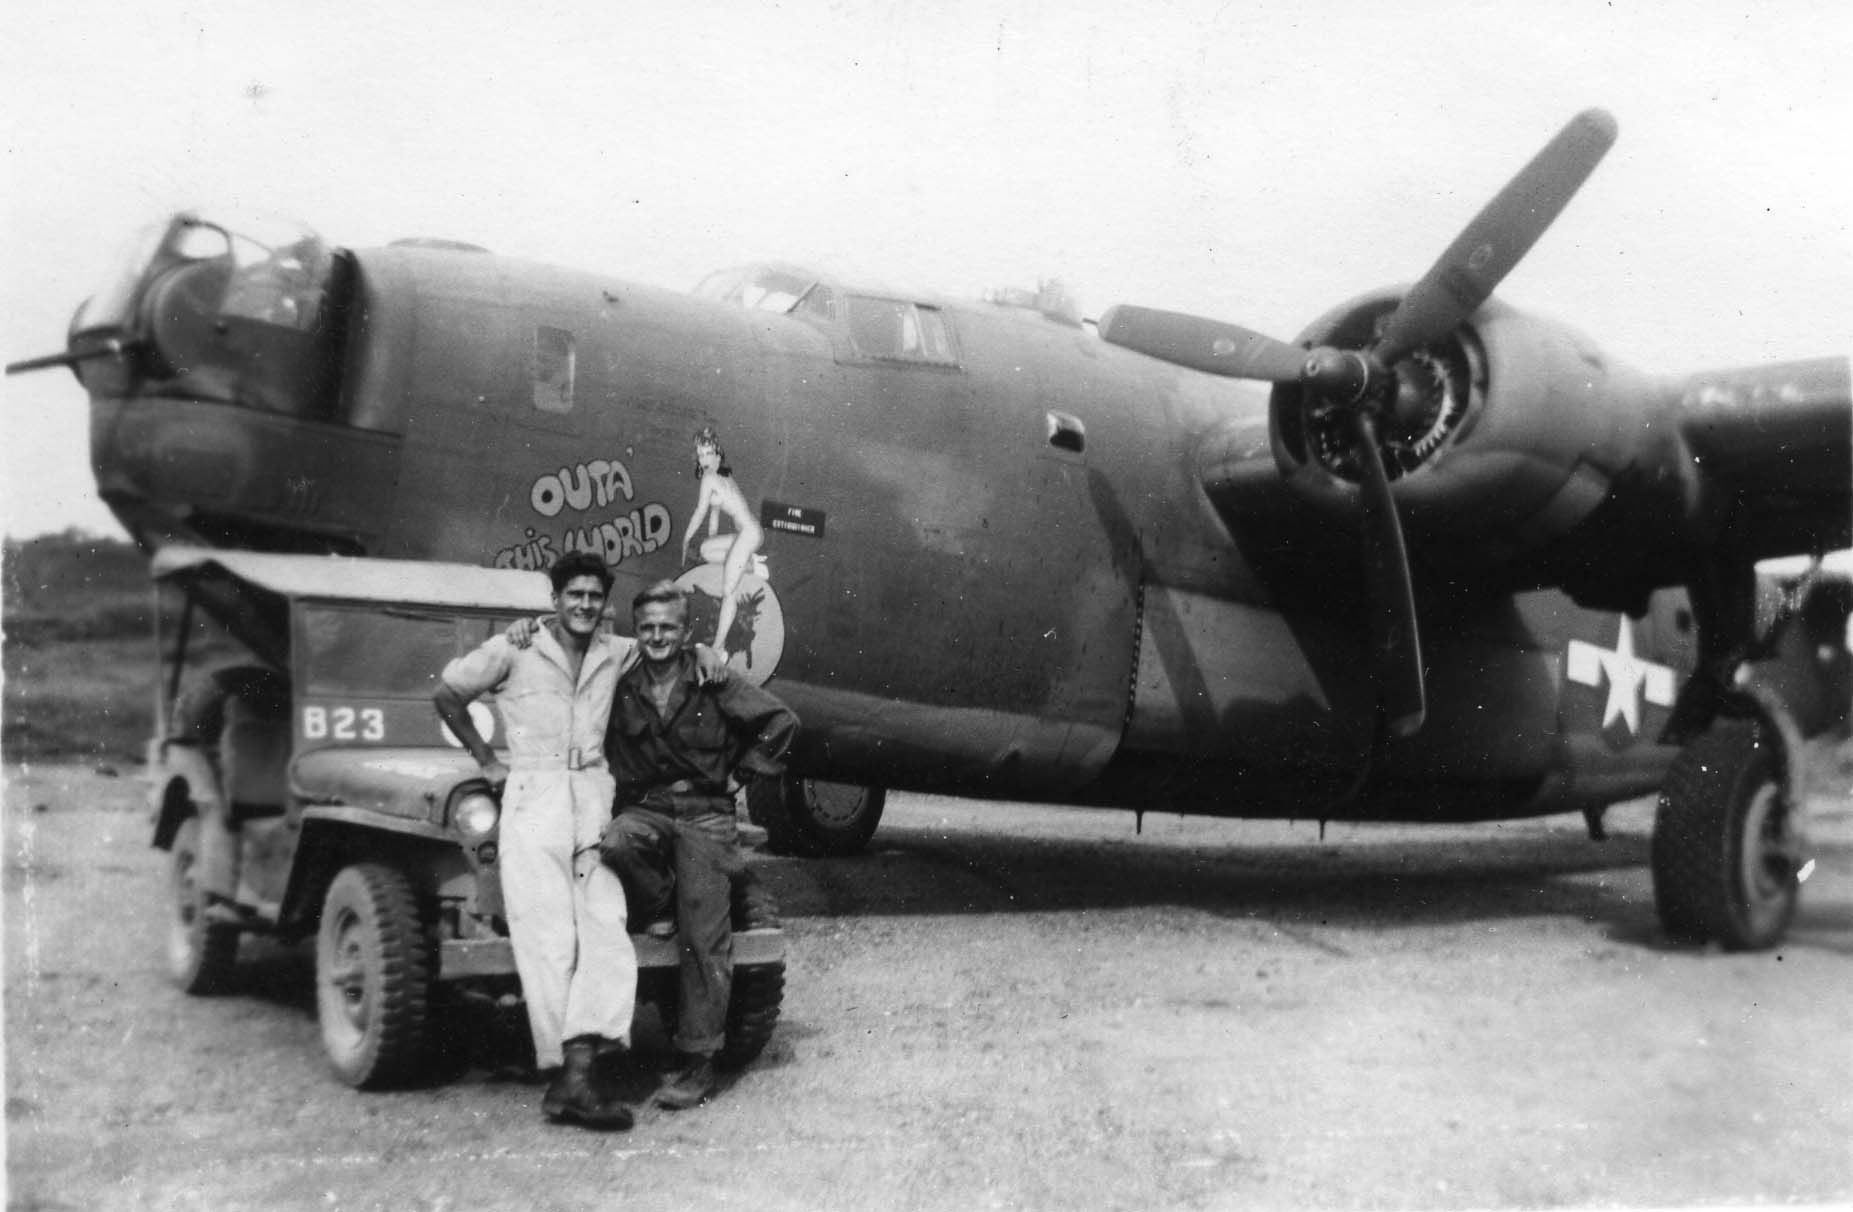 Outa This World - B25 - 22nd Bomb Group - Serial #42-110001 - Sharpe 25 (Thomas Sharpe Collection)